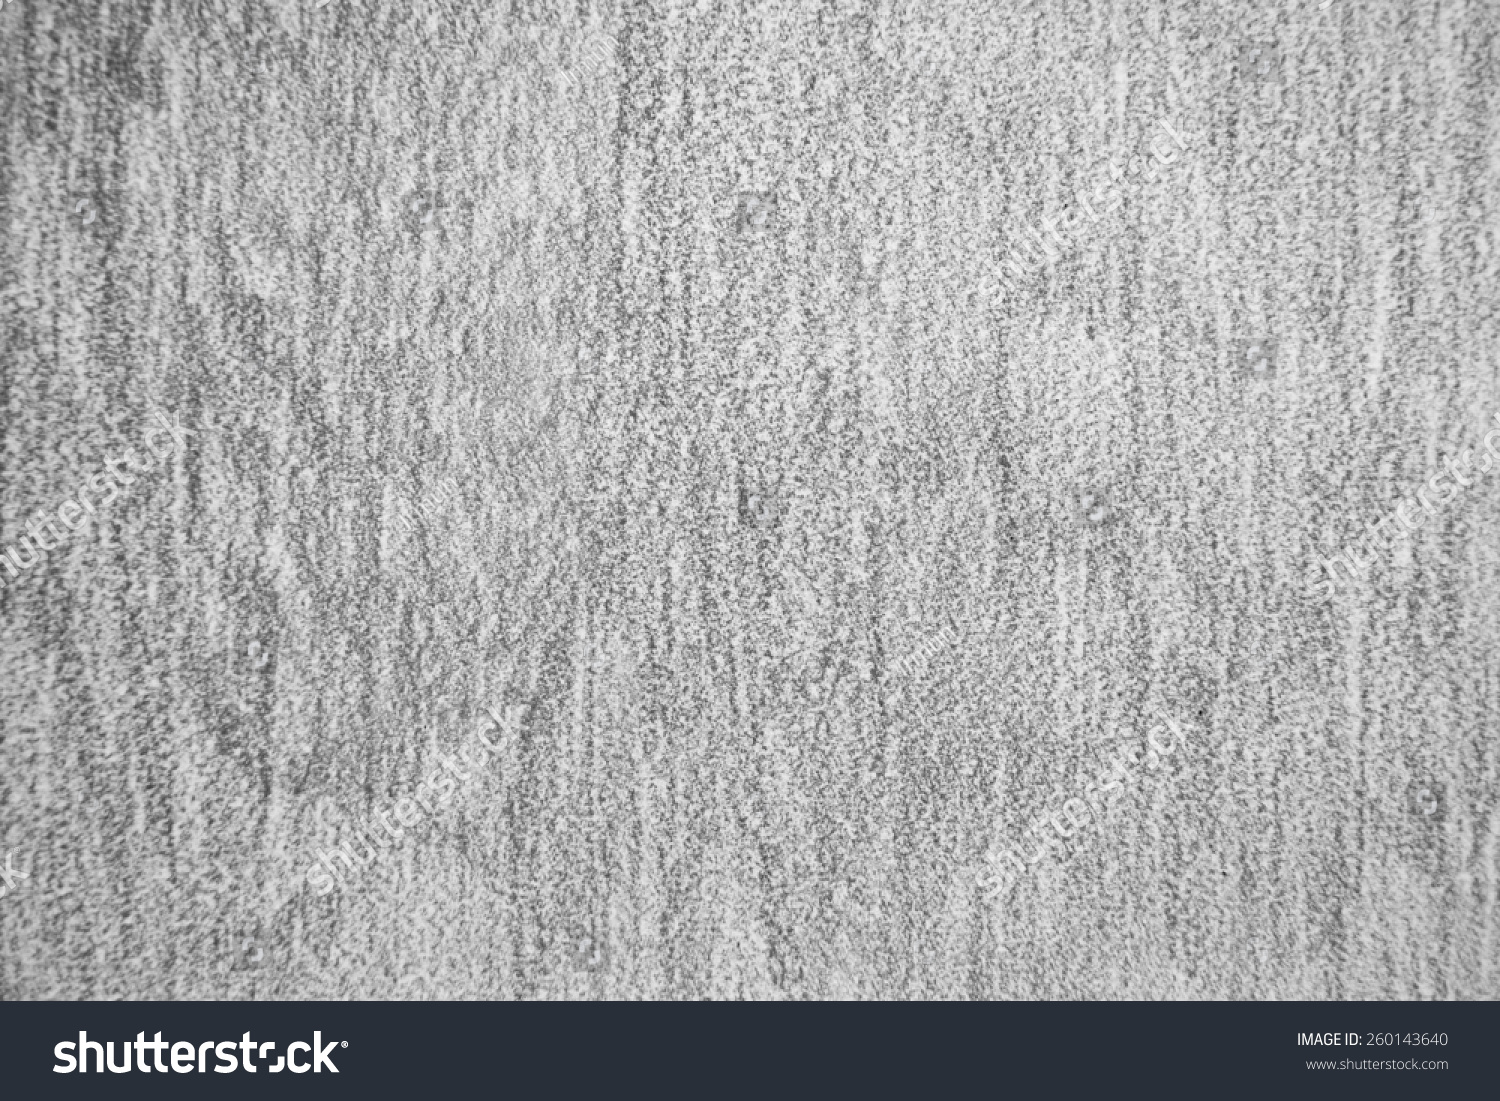 pencil texture background stock photo 260143640 shutterstock